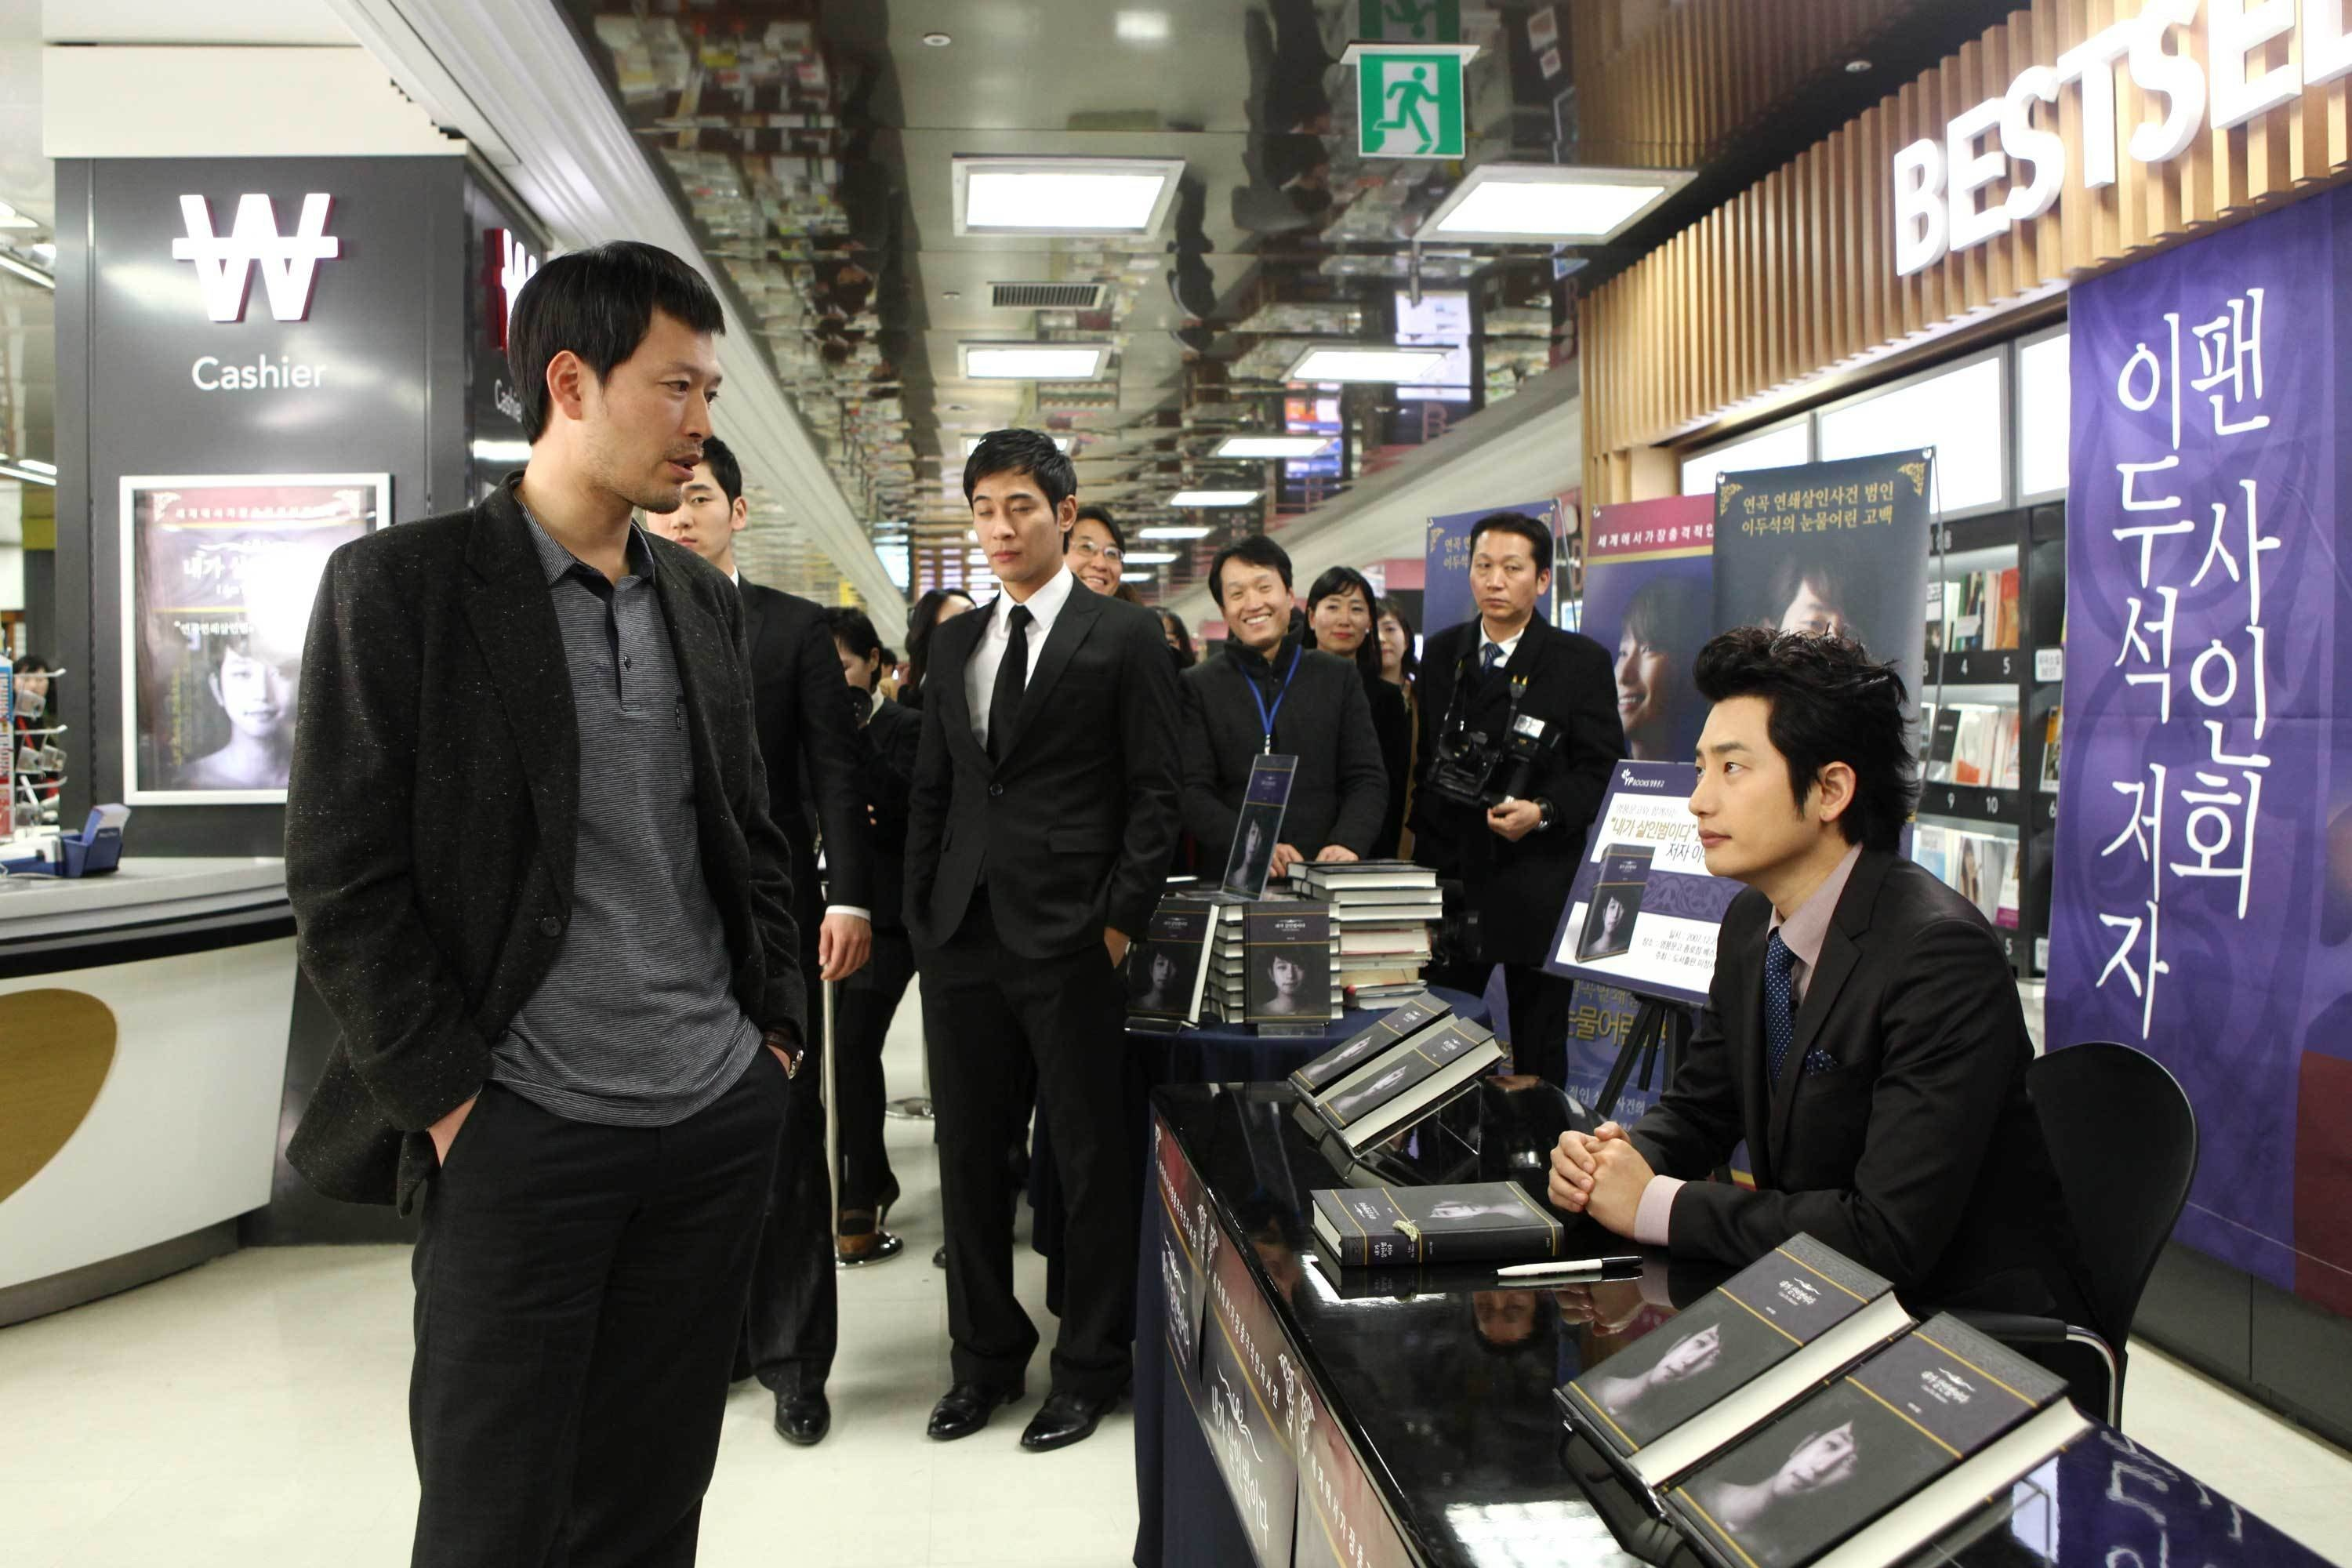 Fantasia Film Festival 2013: 'Confession of Murder' entertains despite being overly ambitious